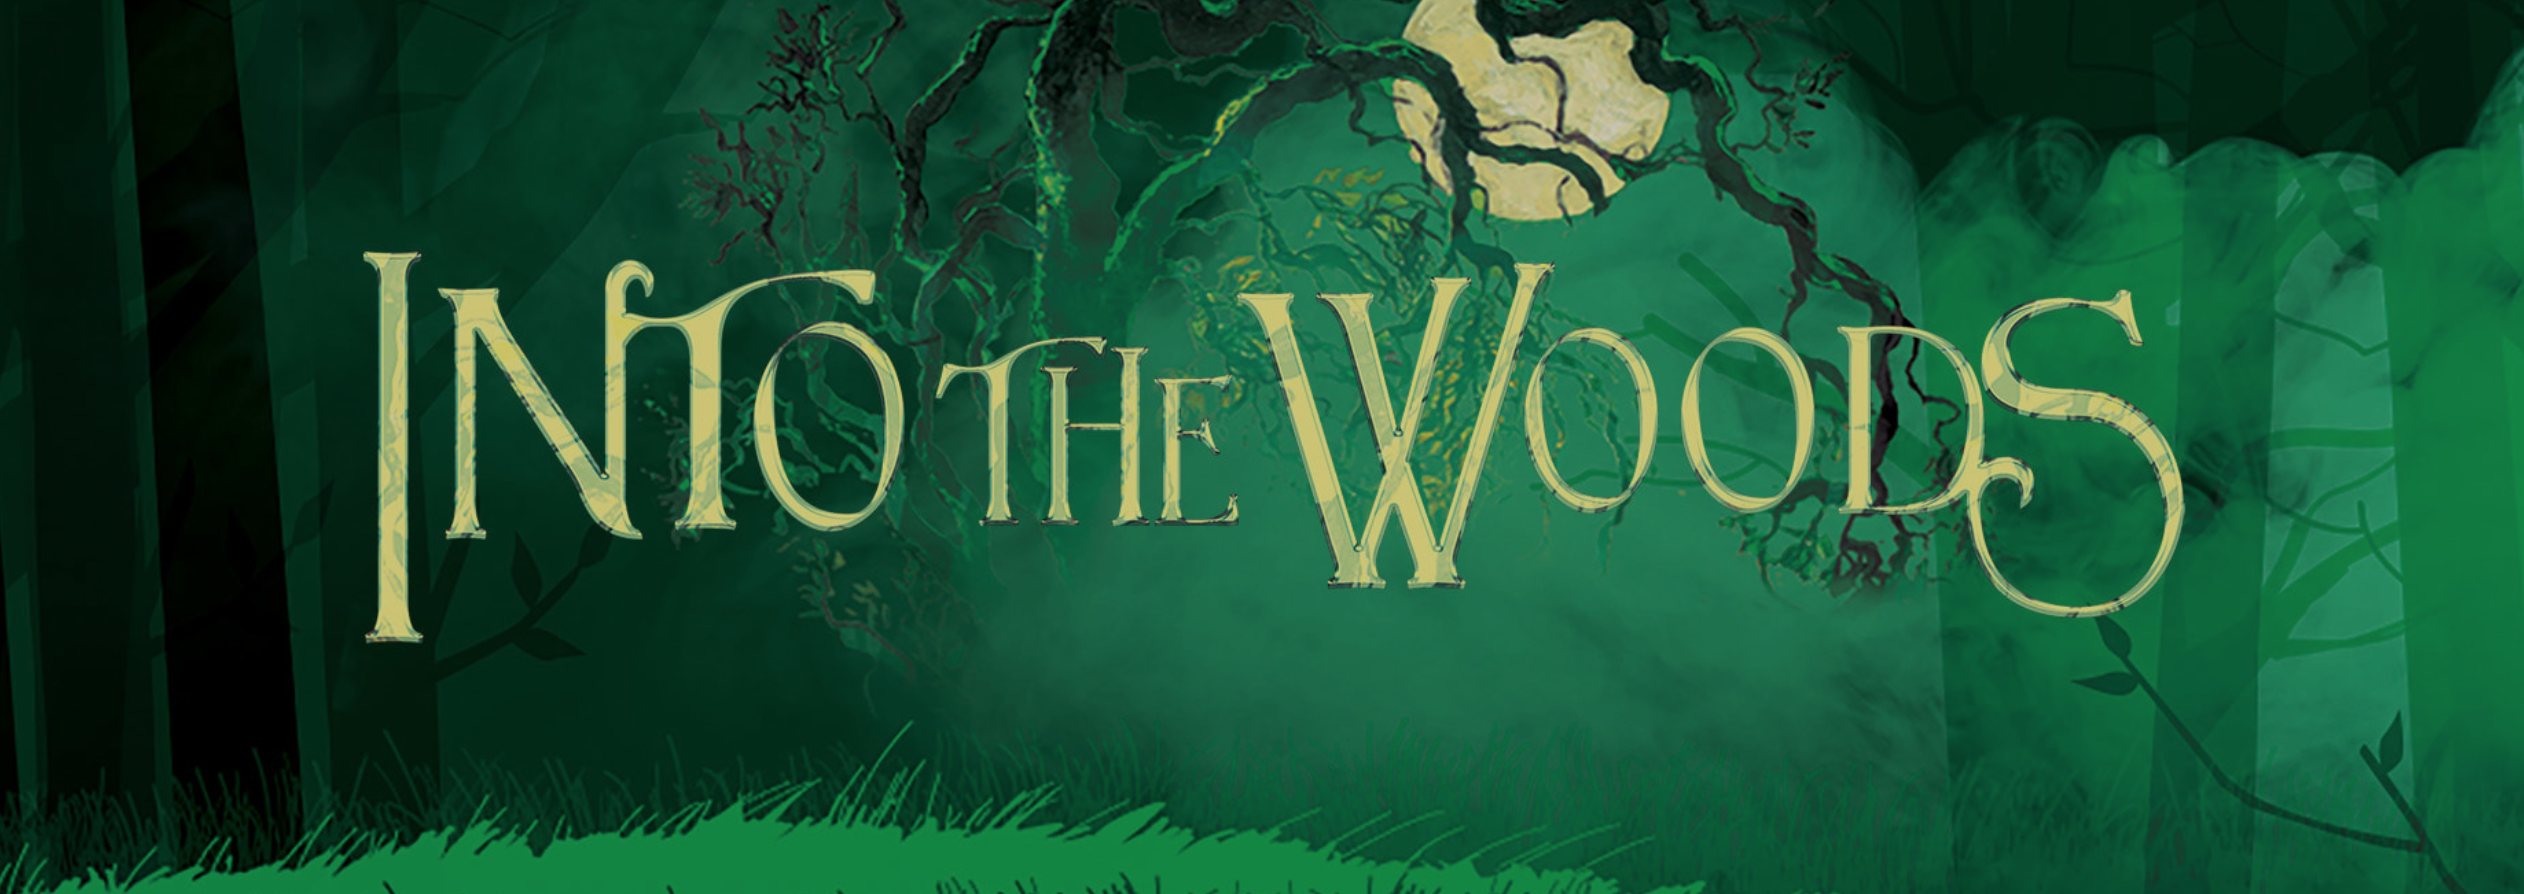 into-the-woods.png